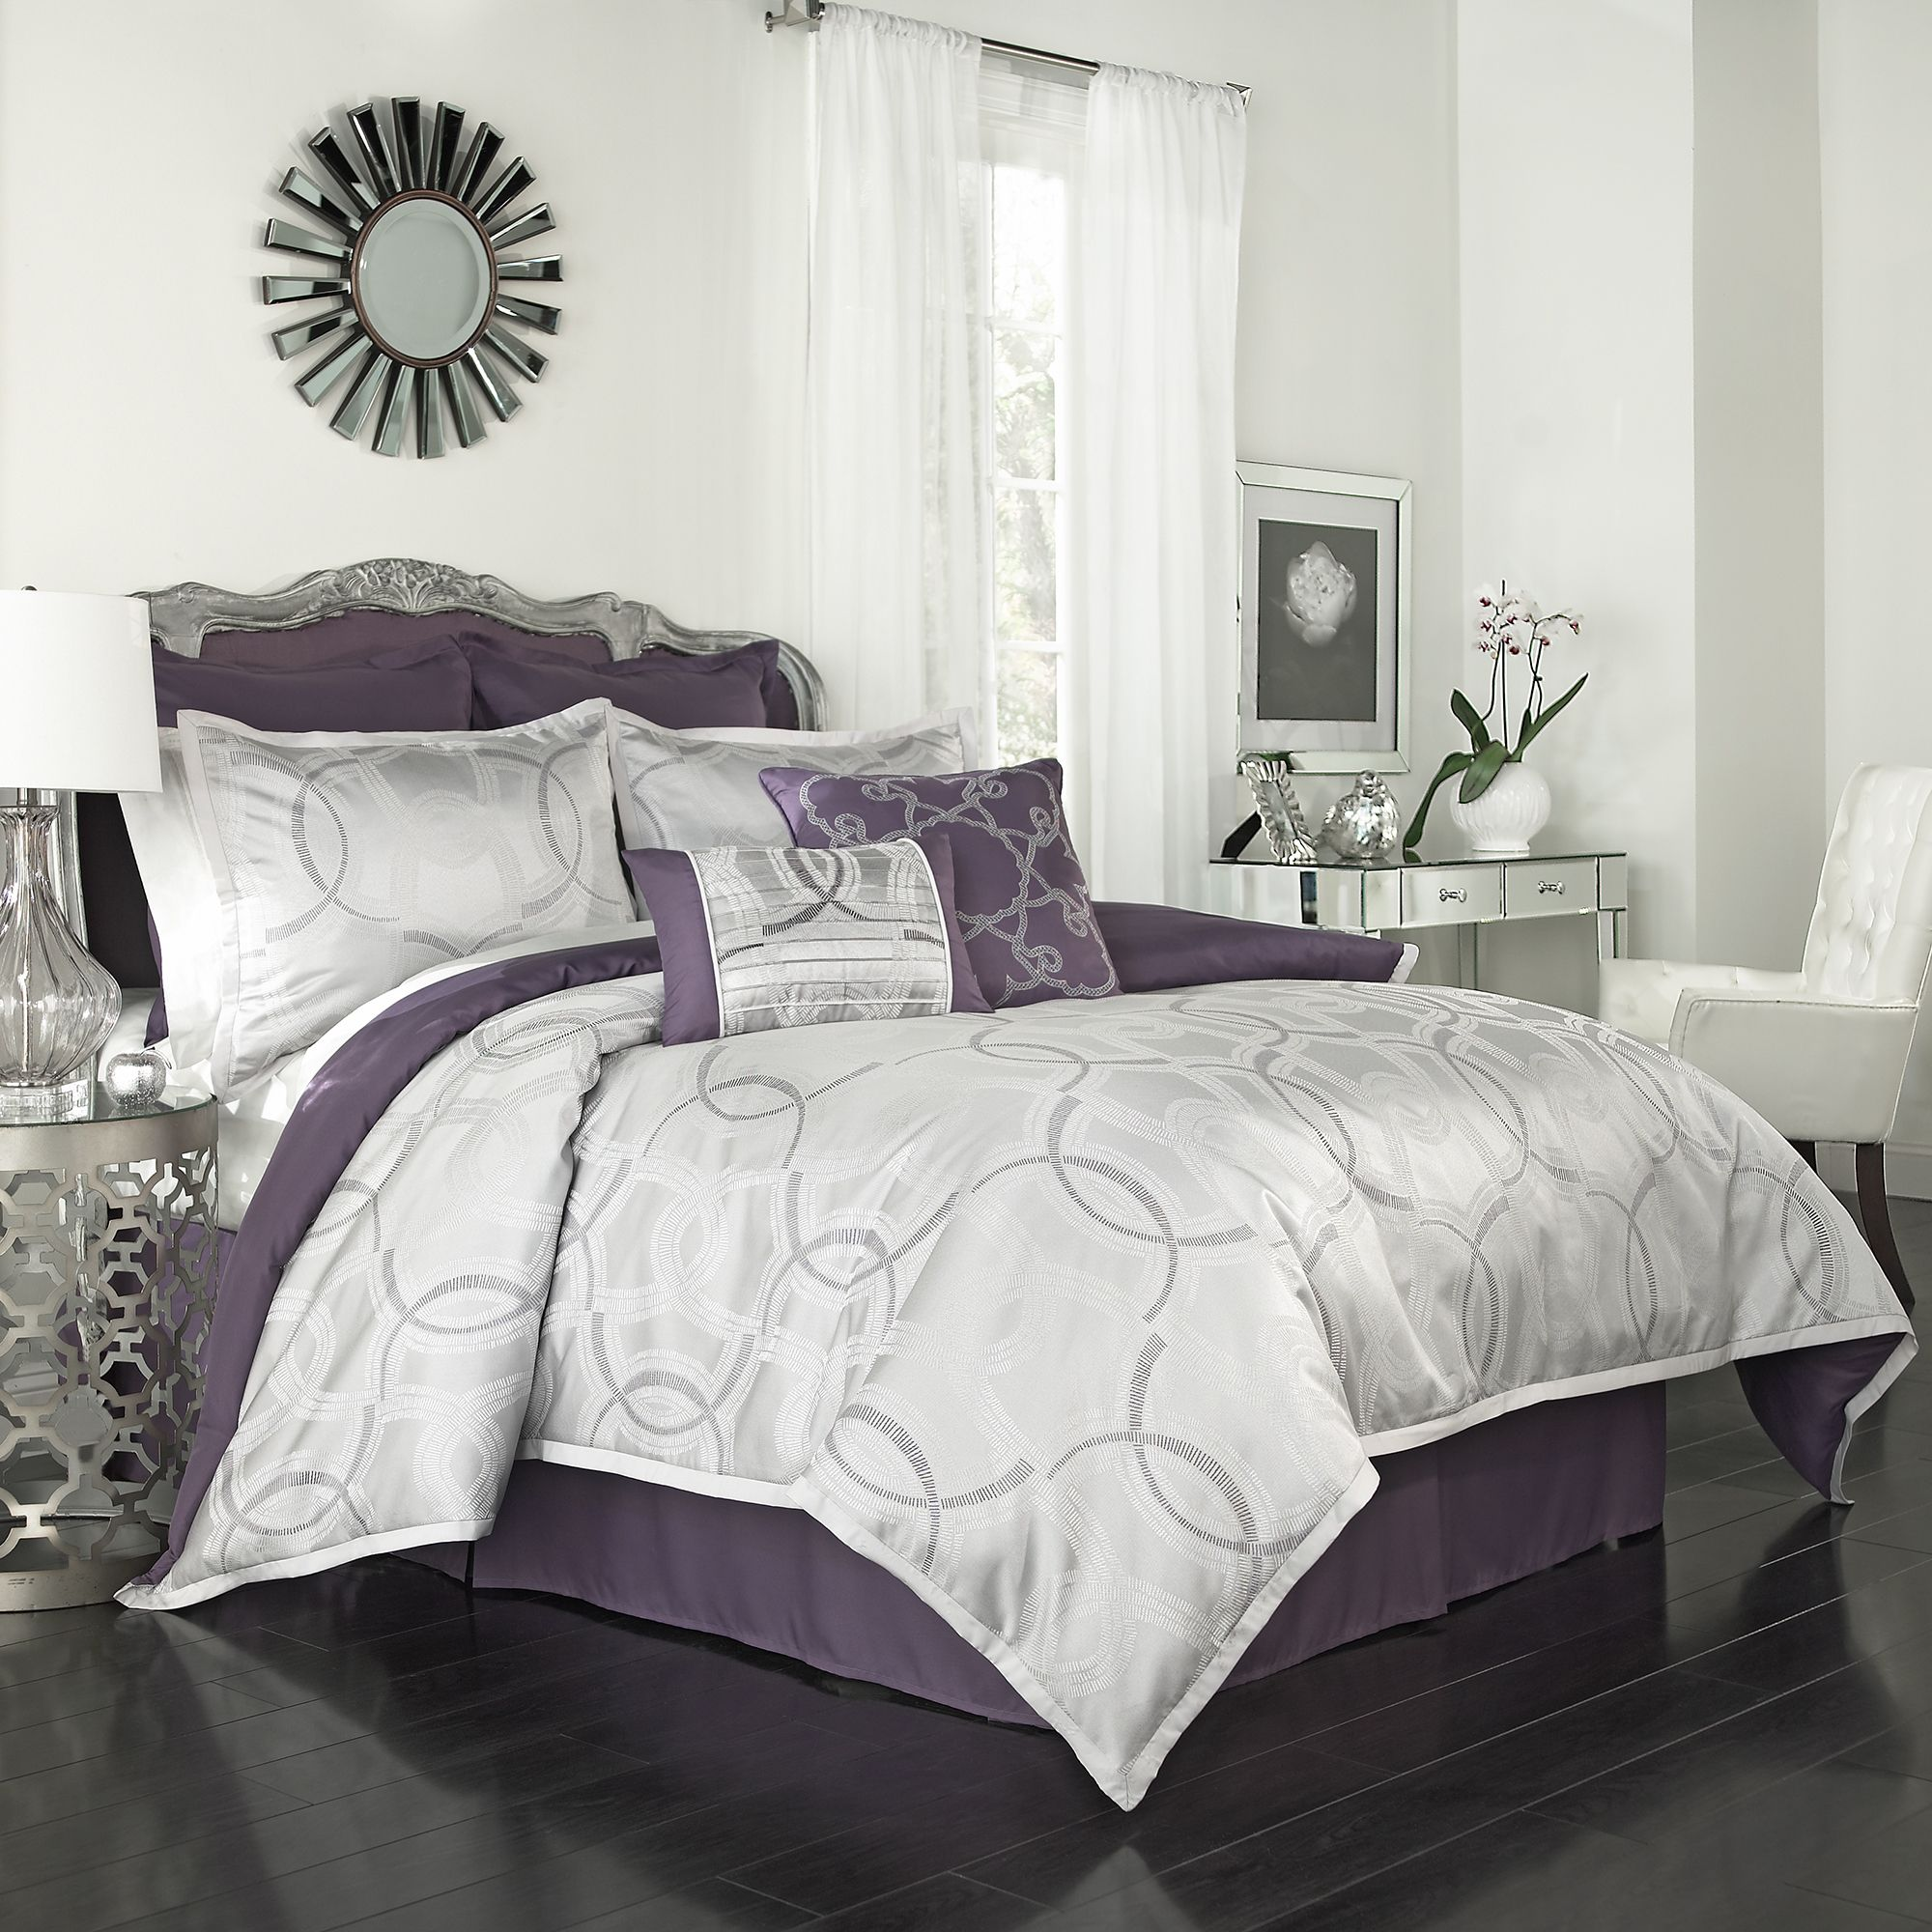 shipping in bedding foxville a home overstock today chic comforter bag product with bath lilac bed sheet purple piece free set